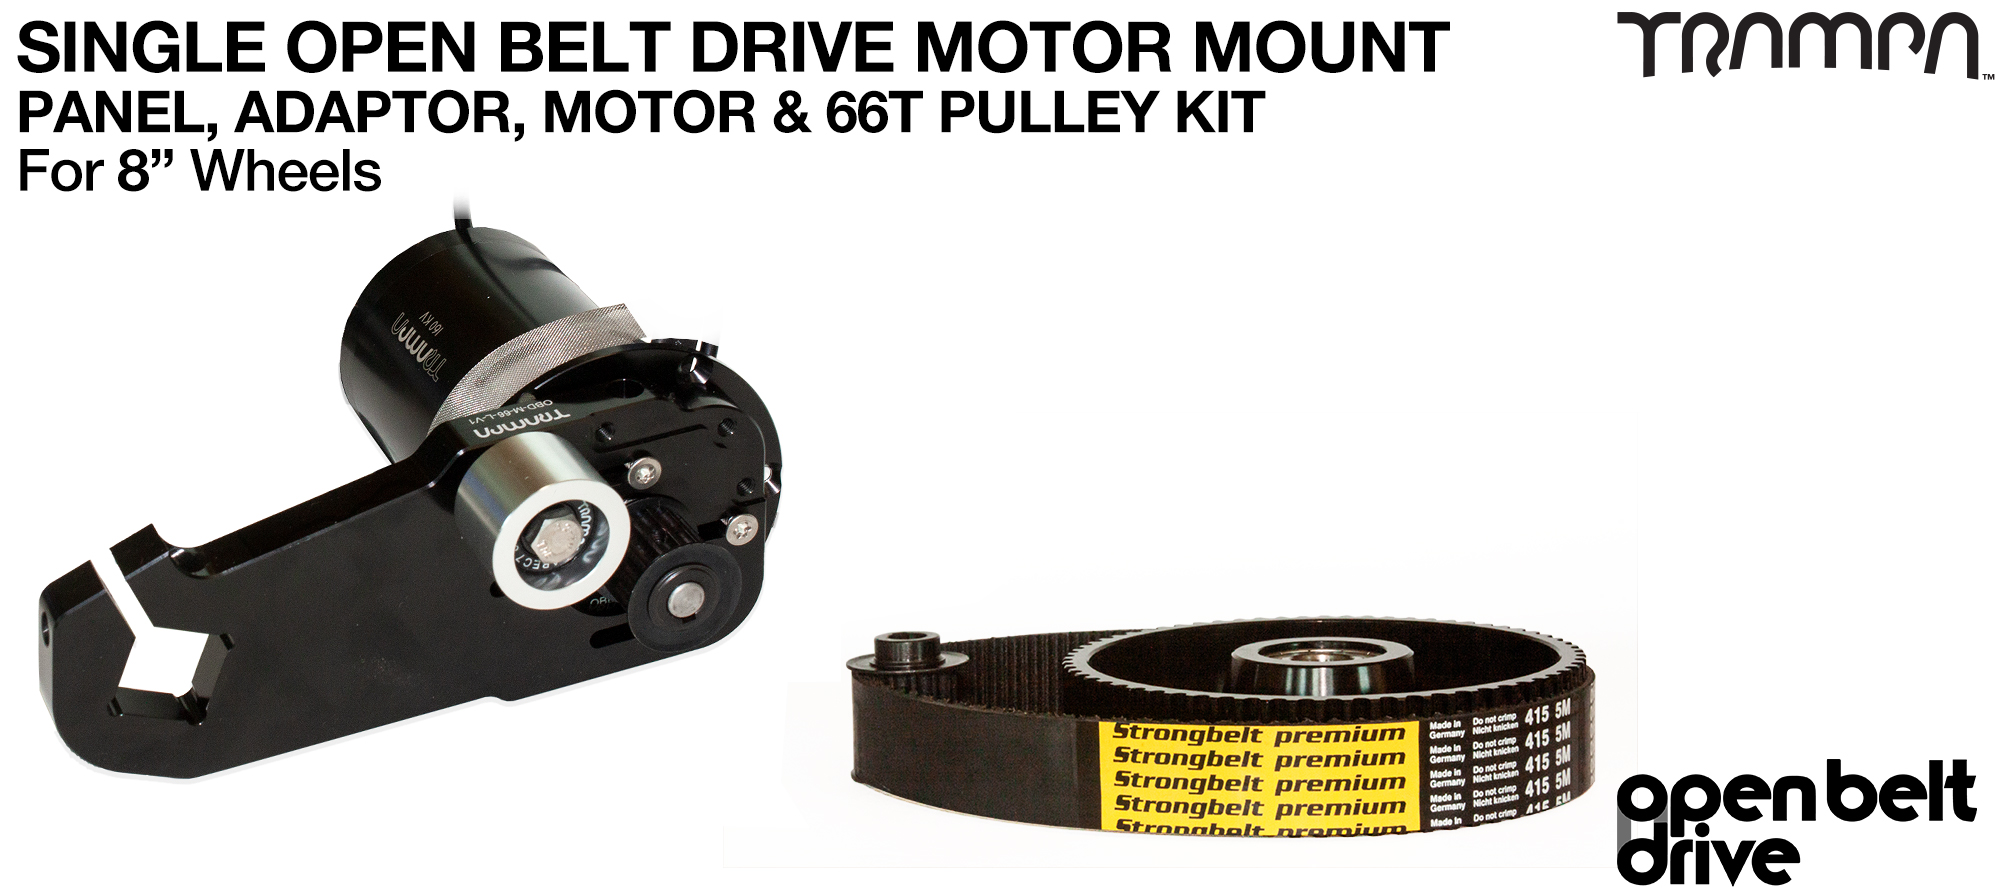 66T OBD Motor Mount & 66 tooth Pulley for 8 inch Wheel with custom Motor - SINGLE